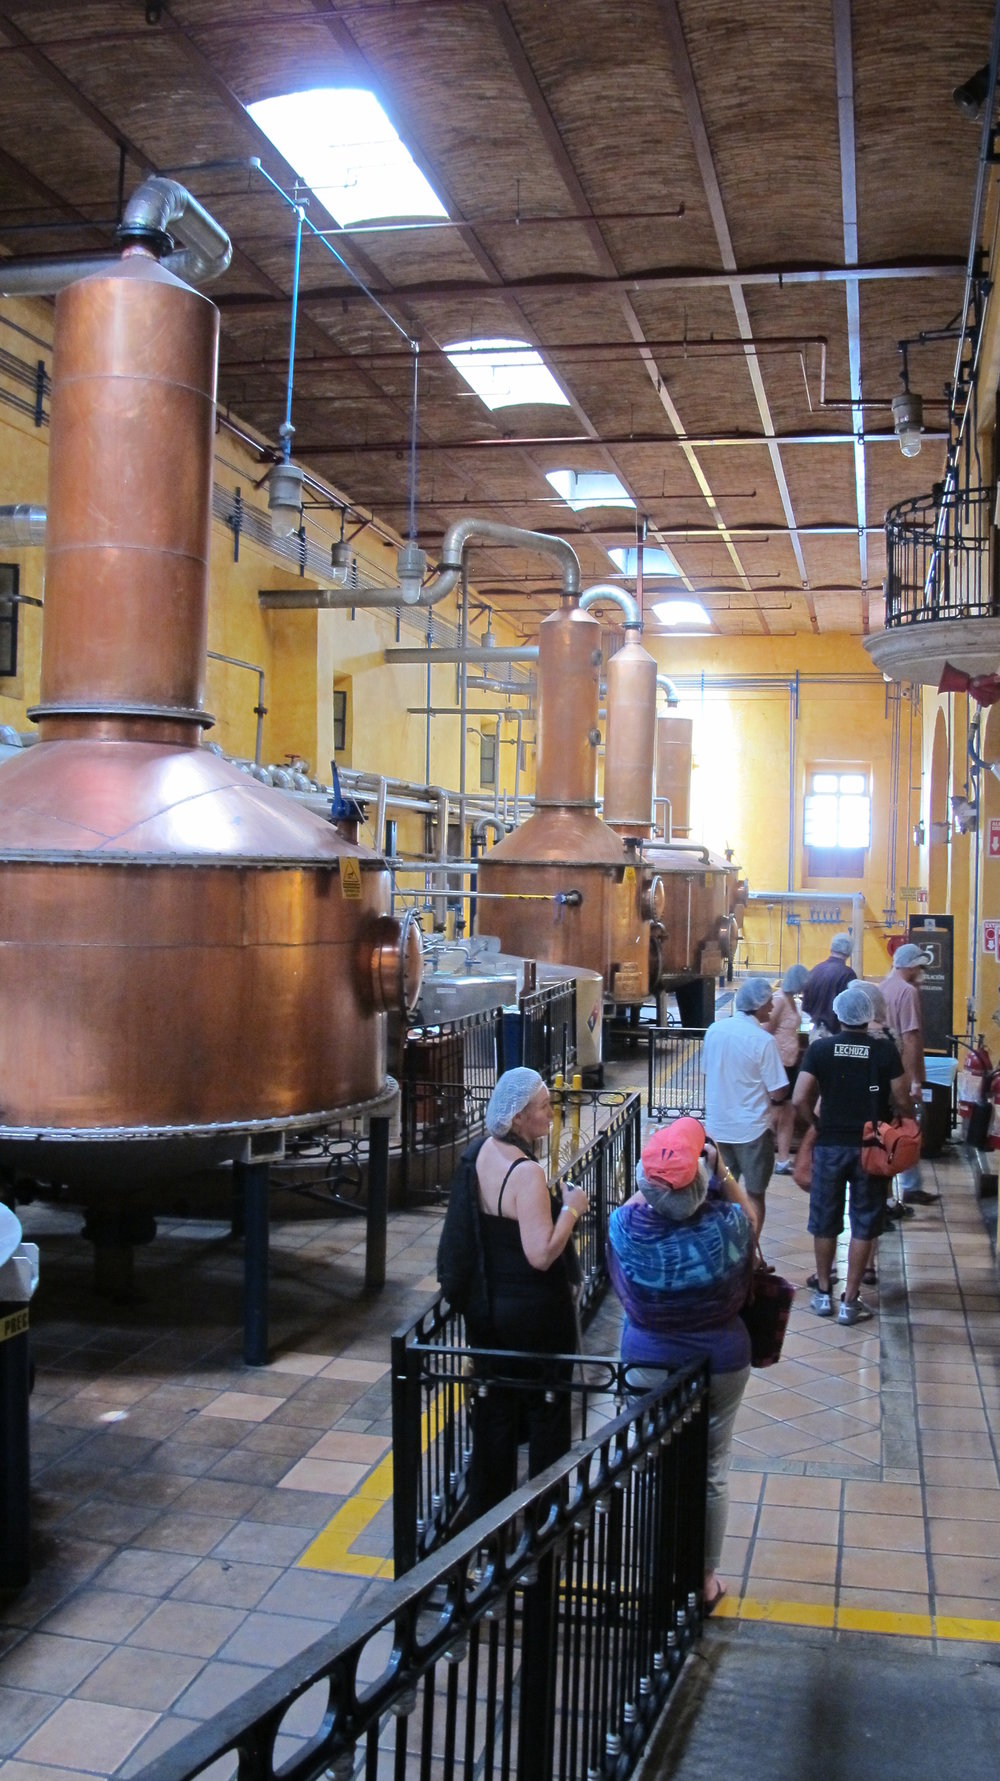 Copper tequila stills at Jose Cuervo